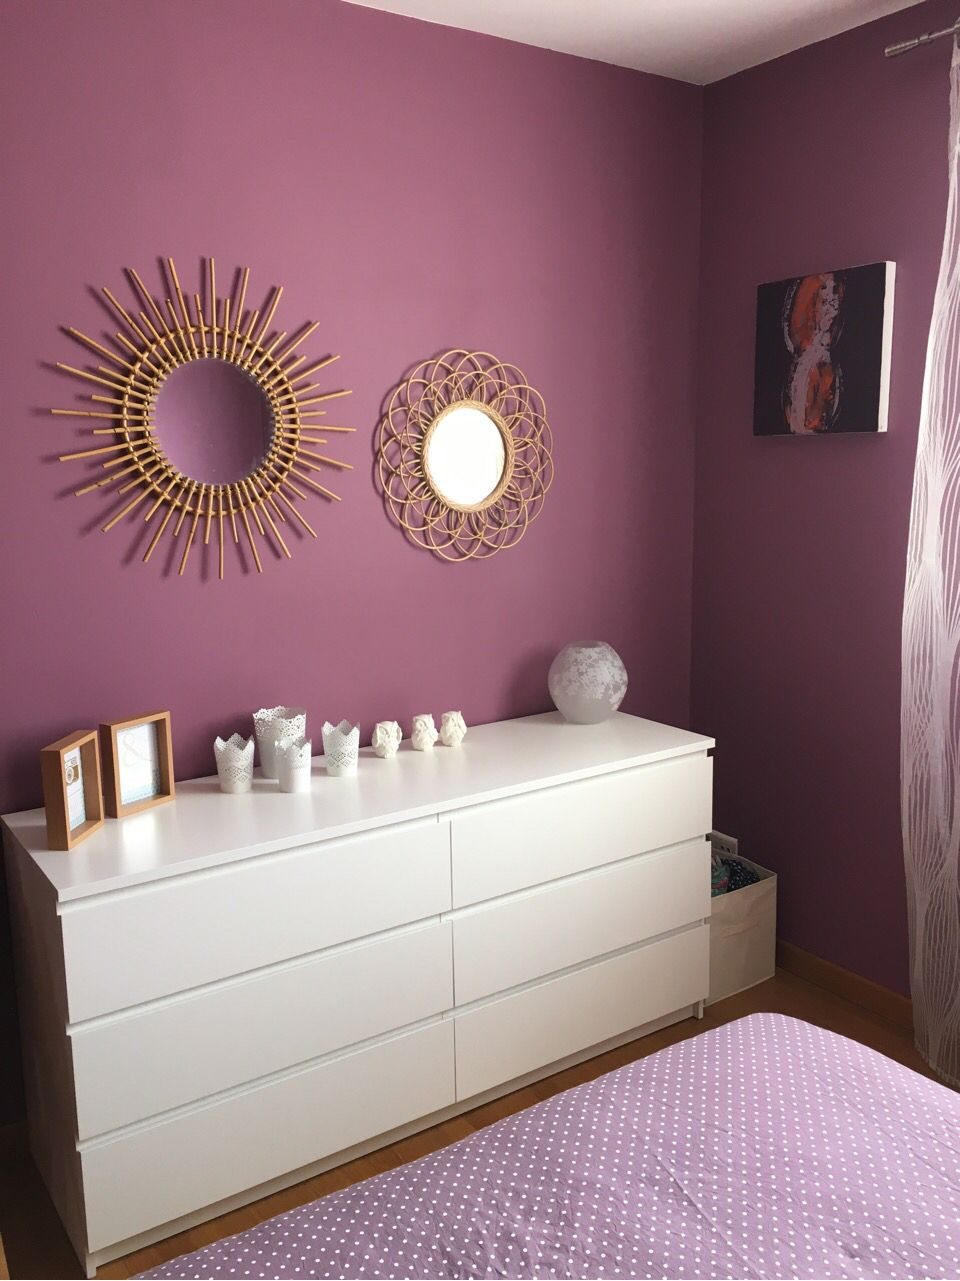 Miroir en rotin  commode Ikea  photophores   My Place   Pinterest     Miroir en rotin  commode Ikea  photophores